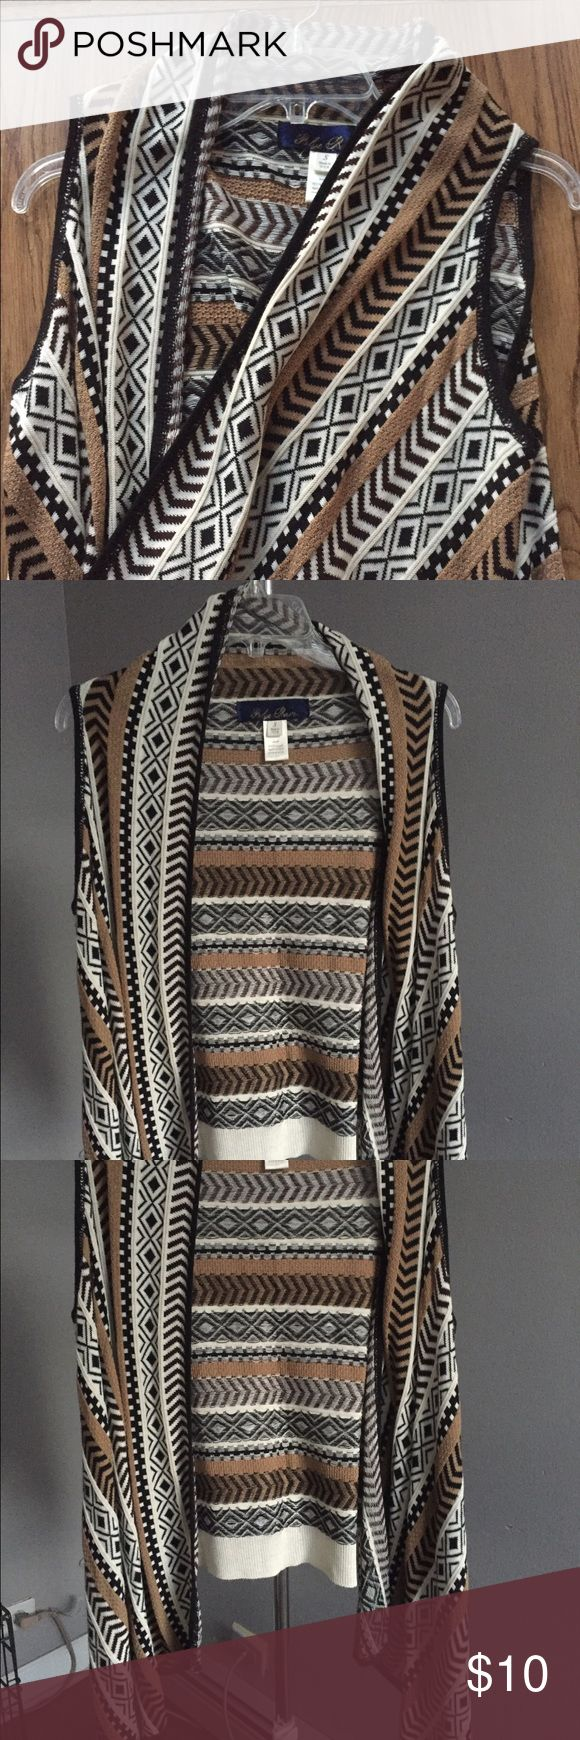 Tribal print sweater wrap Tribal print sweater wrap. Drape front with a shorter back. Lightweight and easy to use as a layering piece. Worn one time. Size small. Francesca's Collections Sweaters